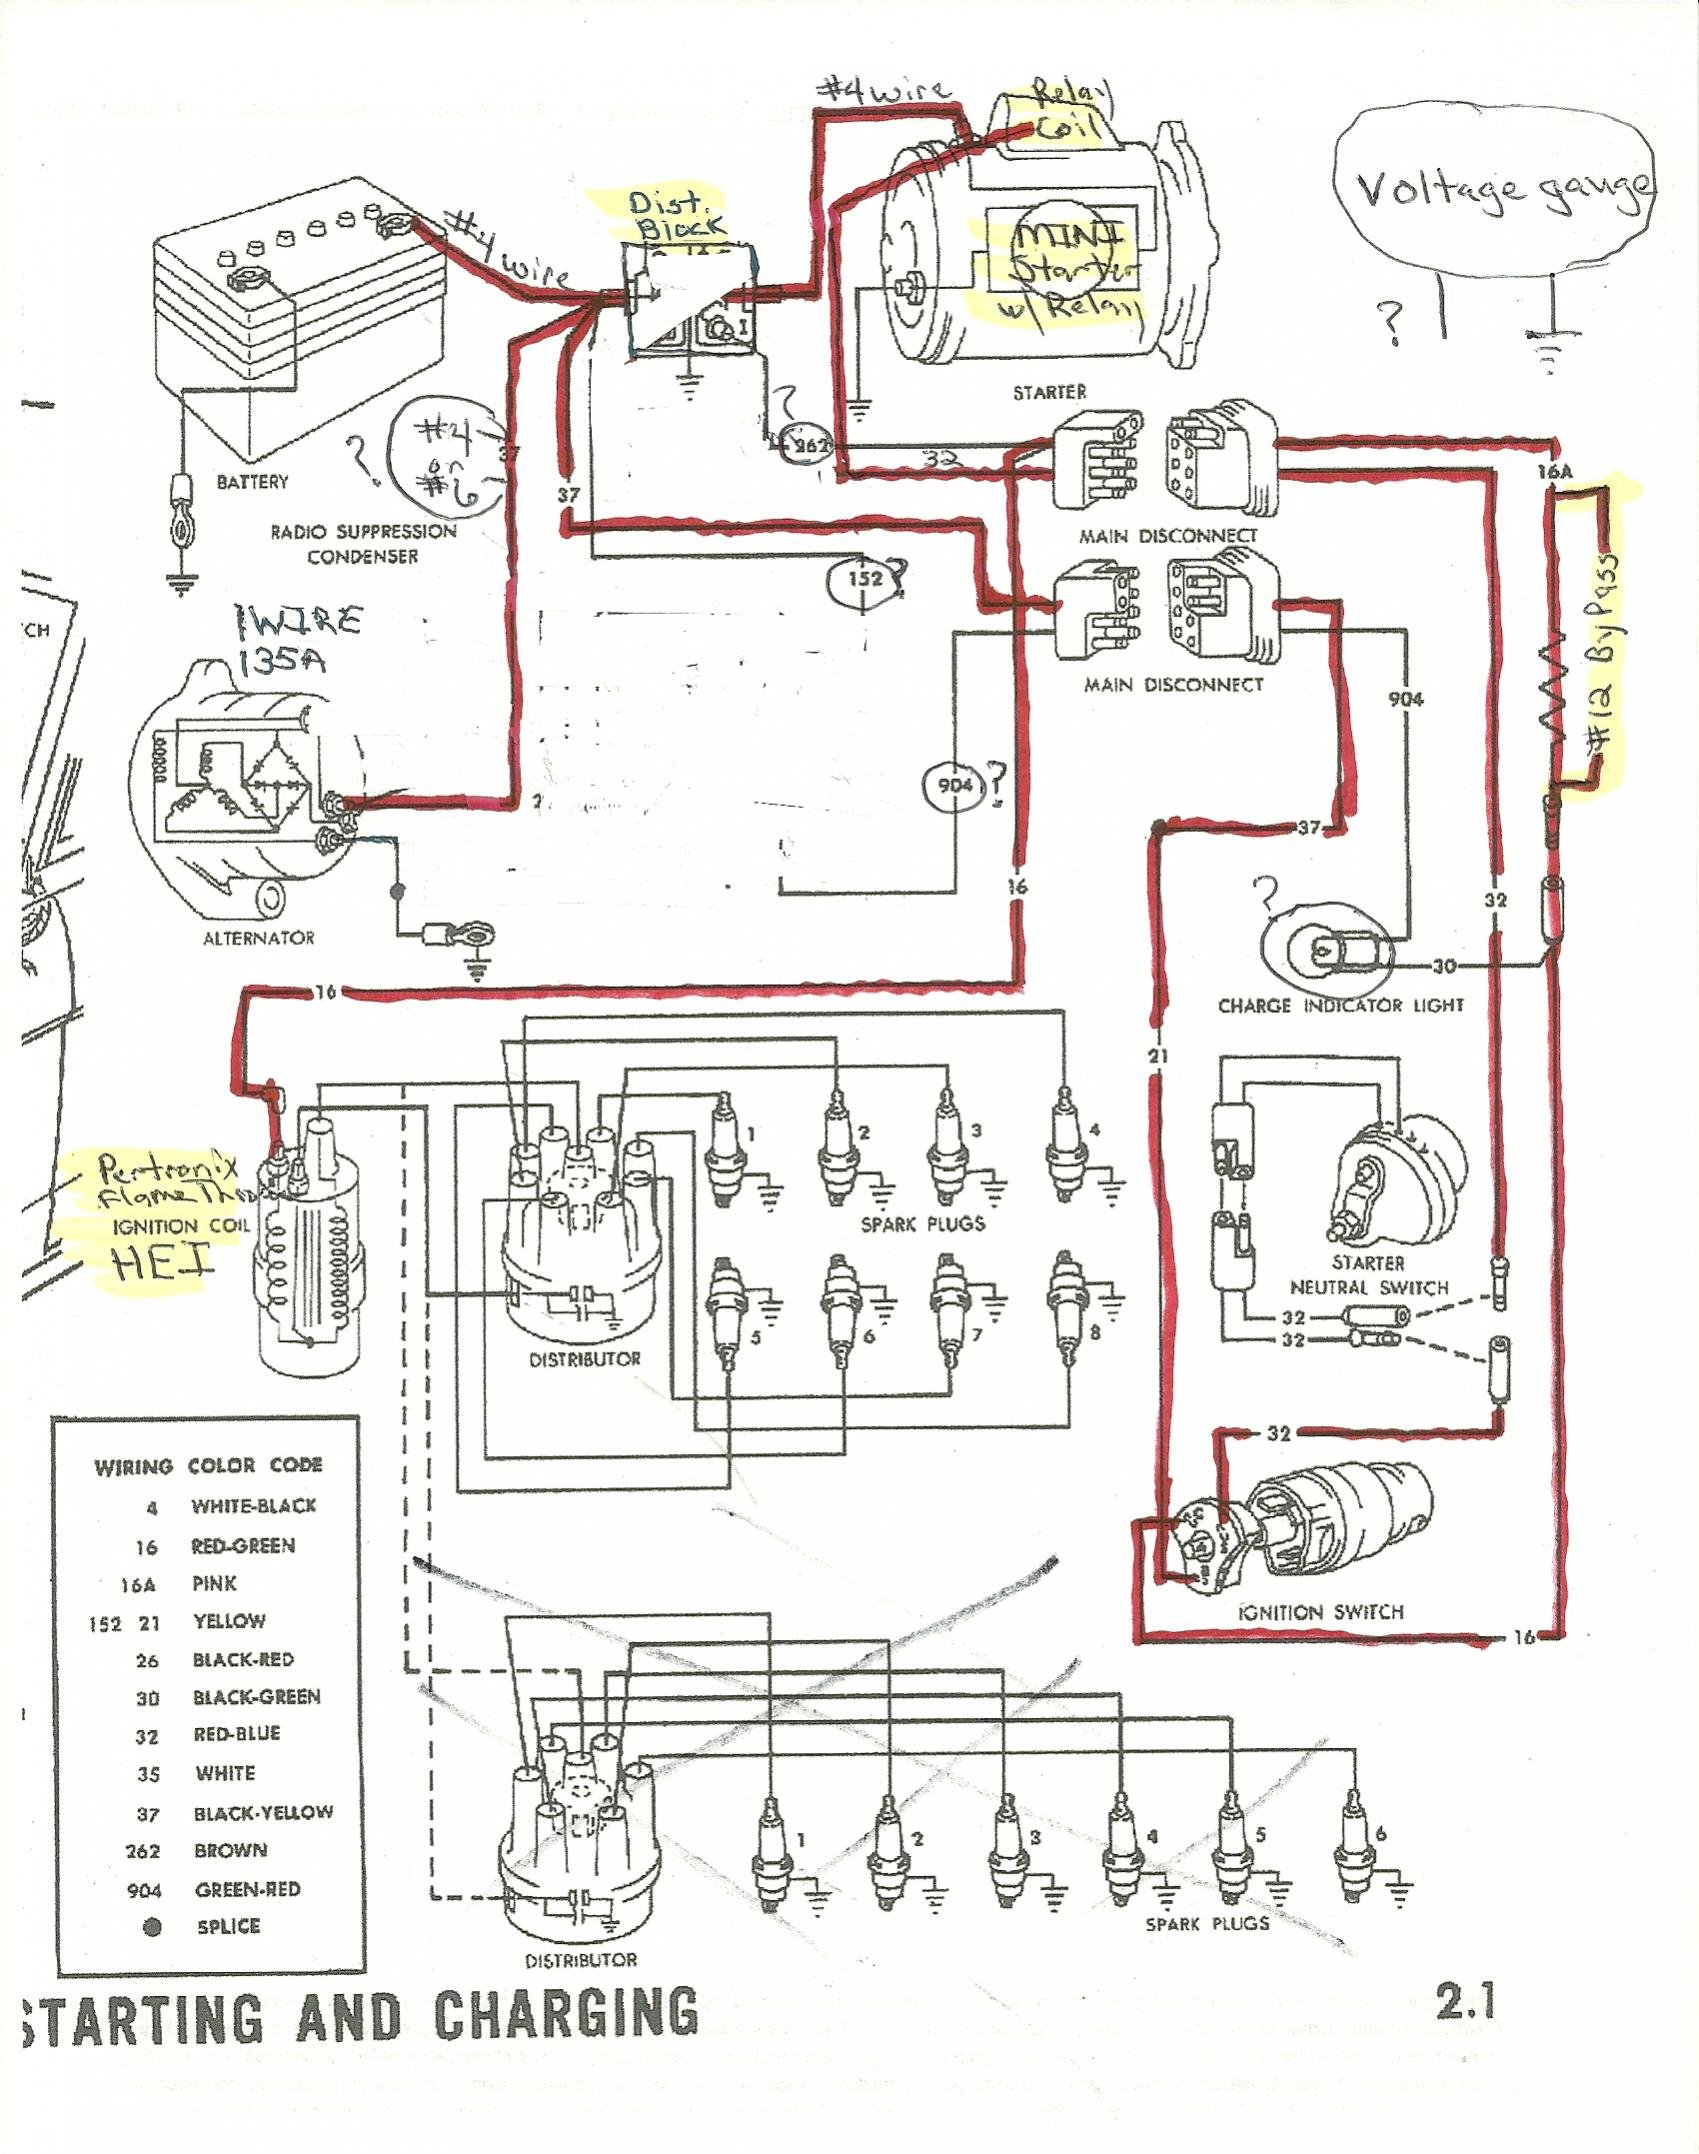 163469d1347246202 1965 alternator starter distributor wiring scan0001 1965 mustang wiring diagrams readingrat net 65 ford mustang wiring diagram at virtualis.co